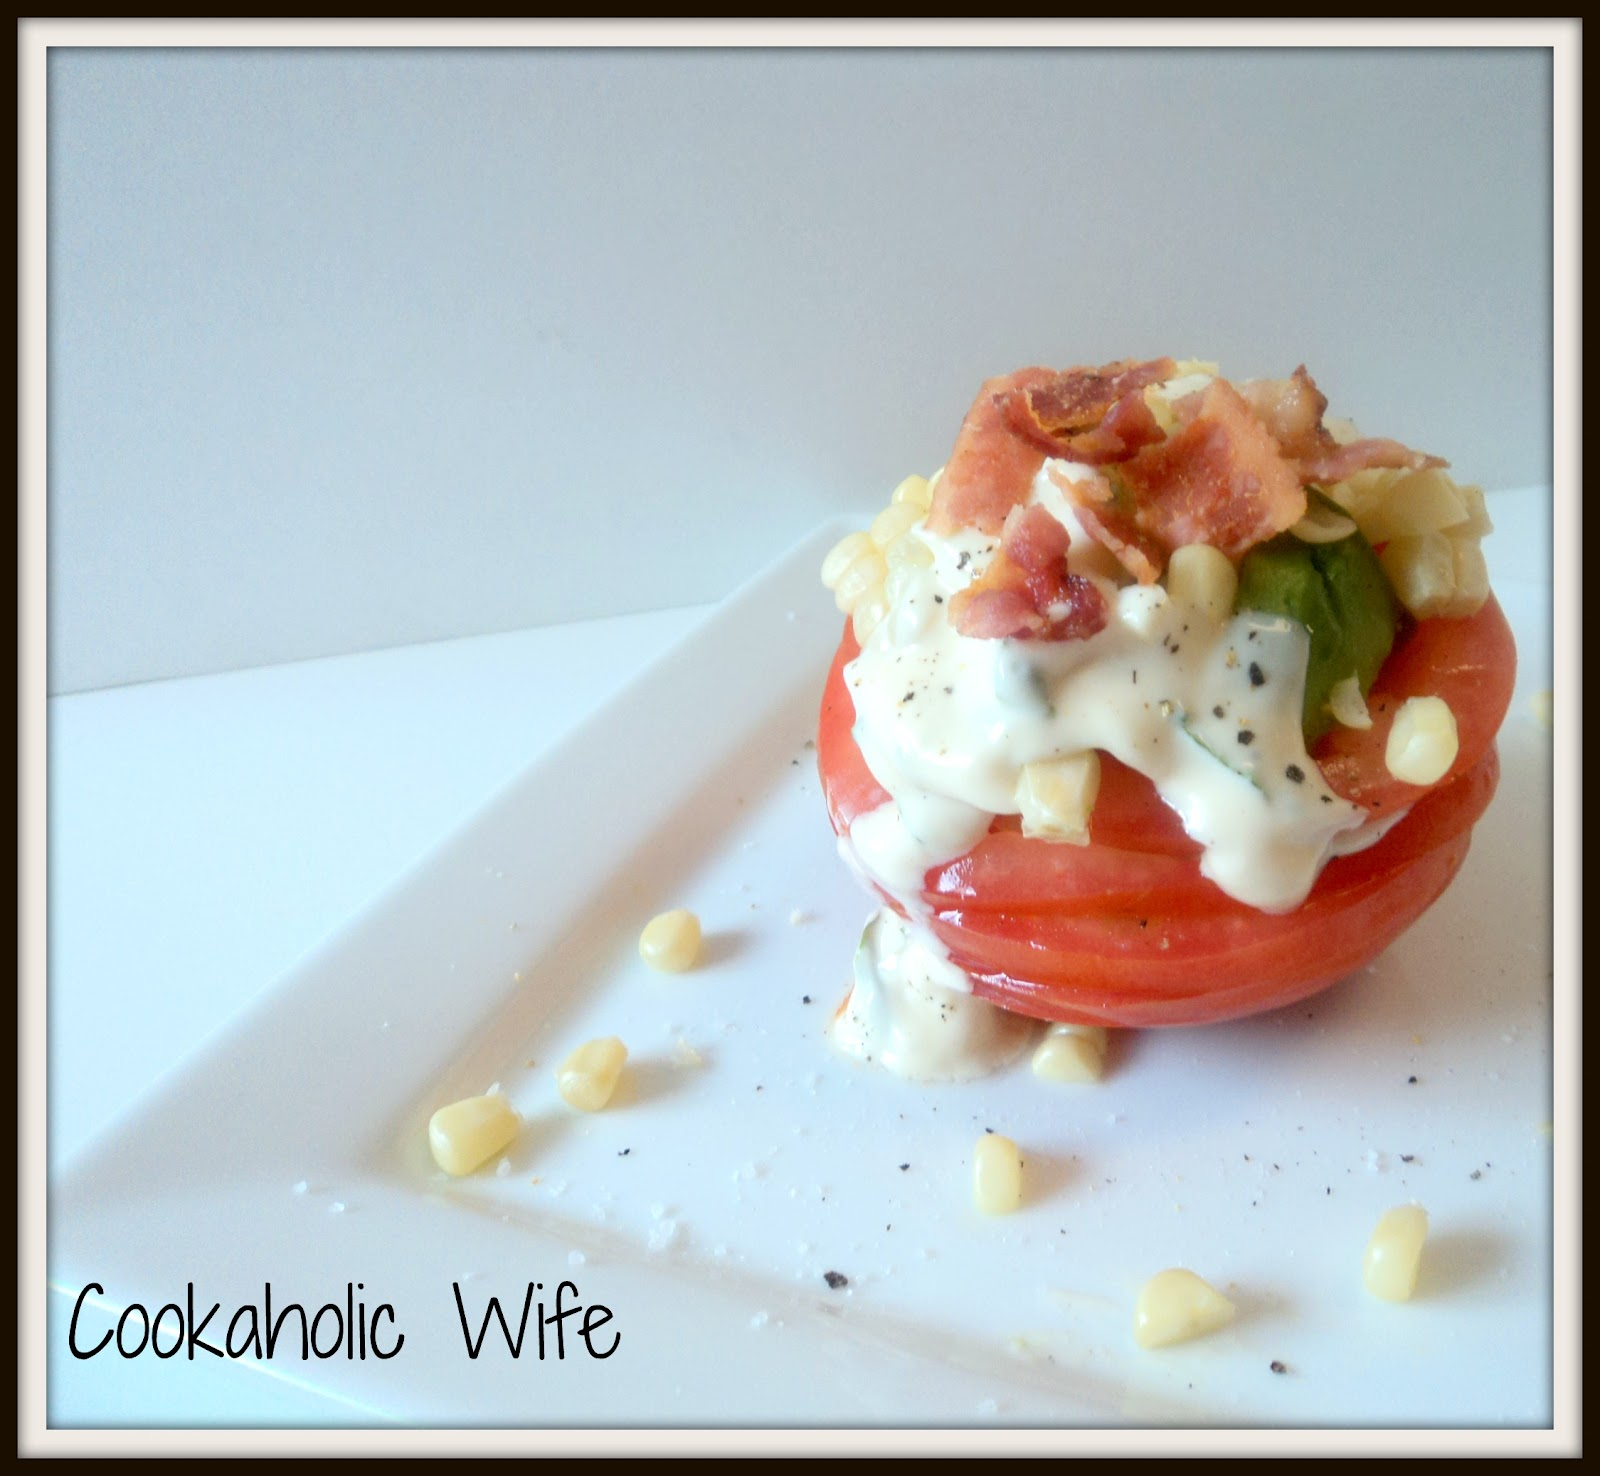 Cookaholic Wife: Tomato Stack Salad with Corn and Avocado